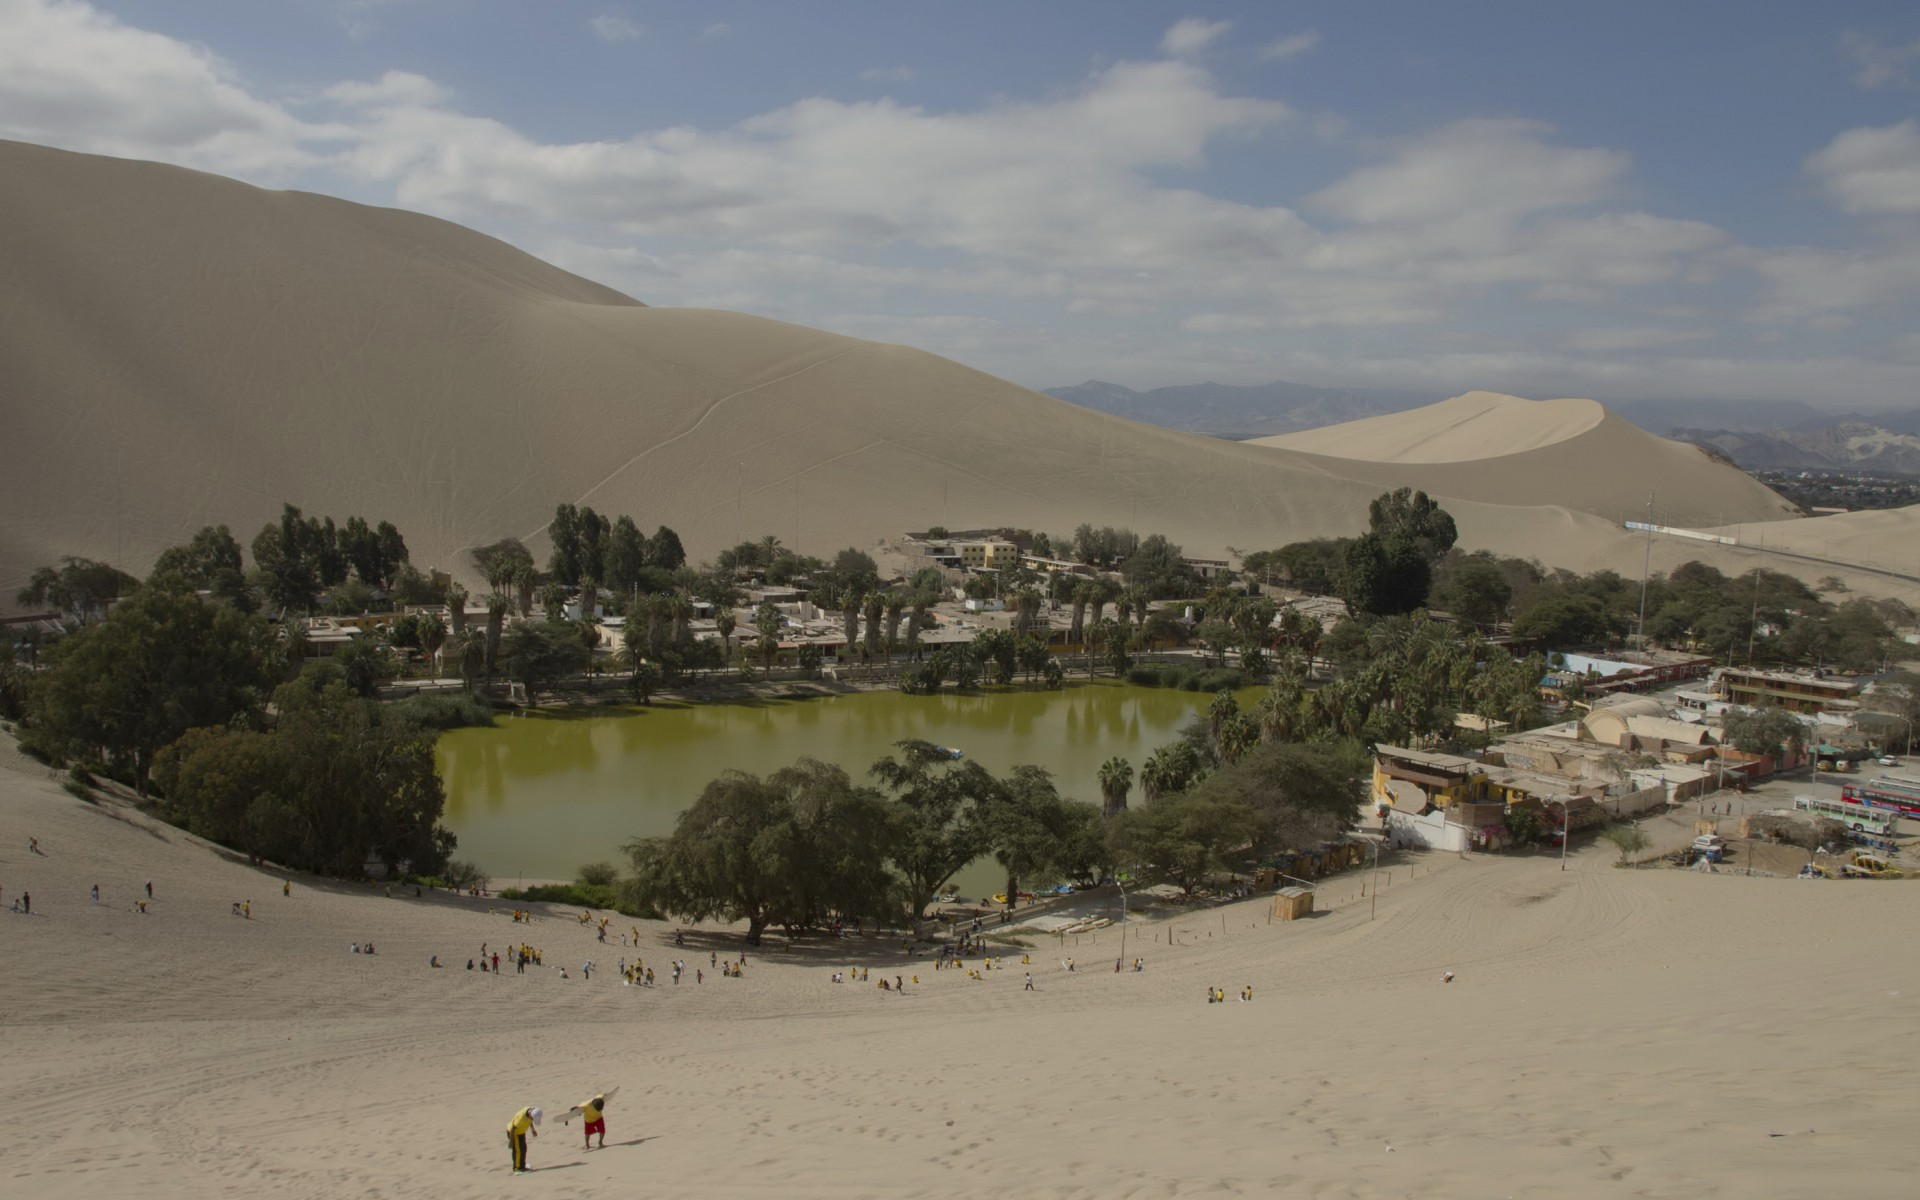 Marble Iphone X Wallpaper Huacachina Oasis Desert Peru Wallpapers Huacachina Oasis